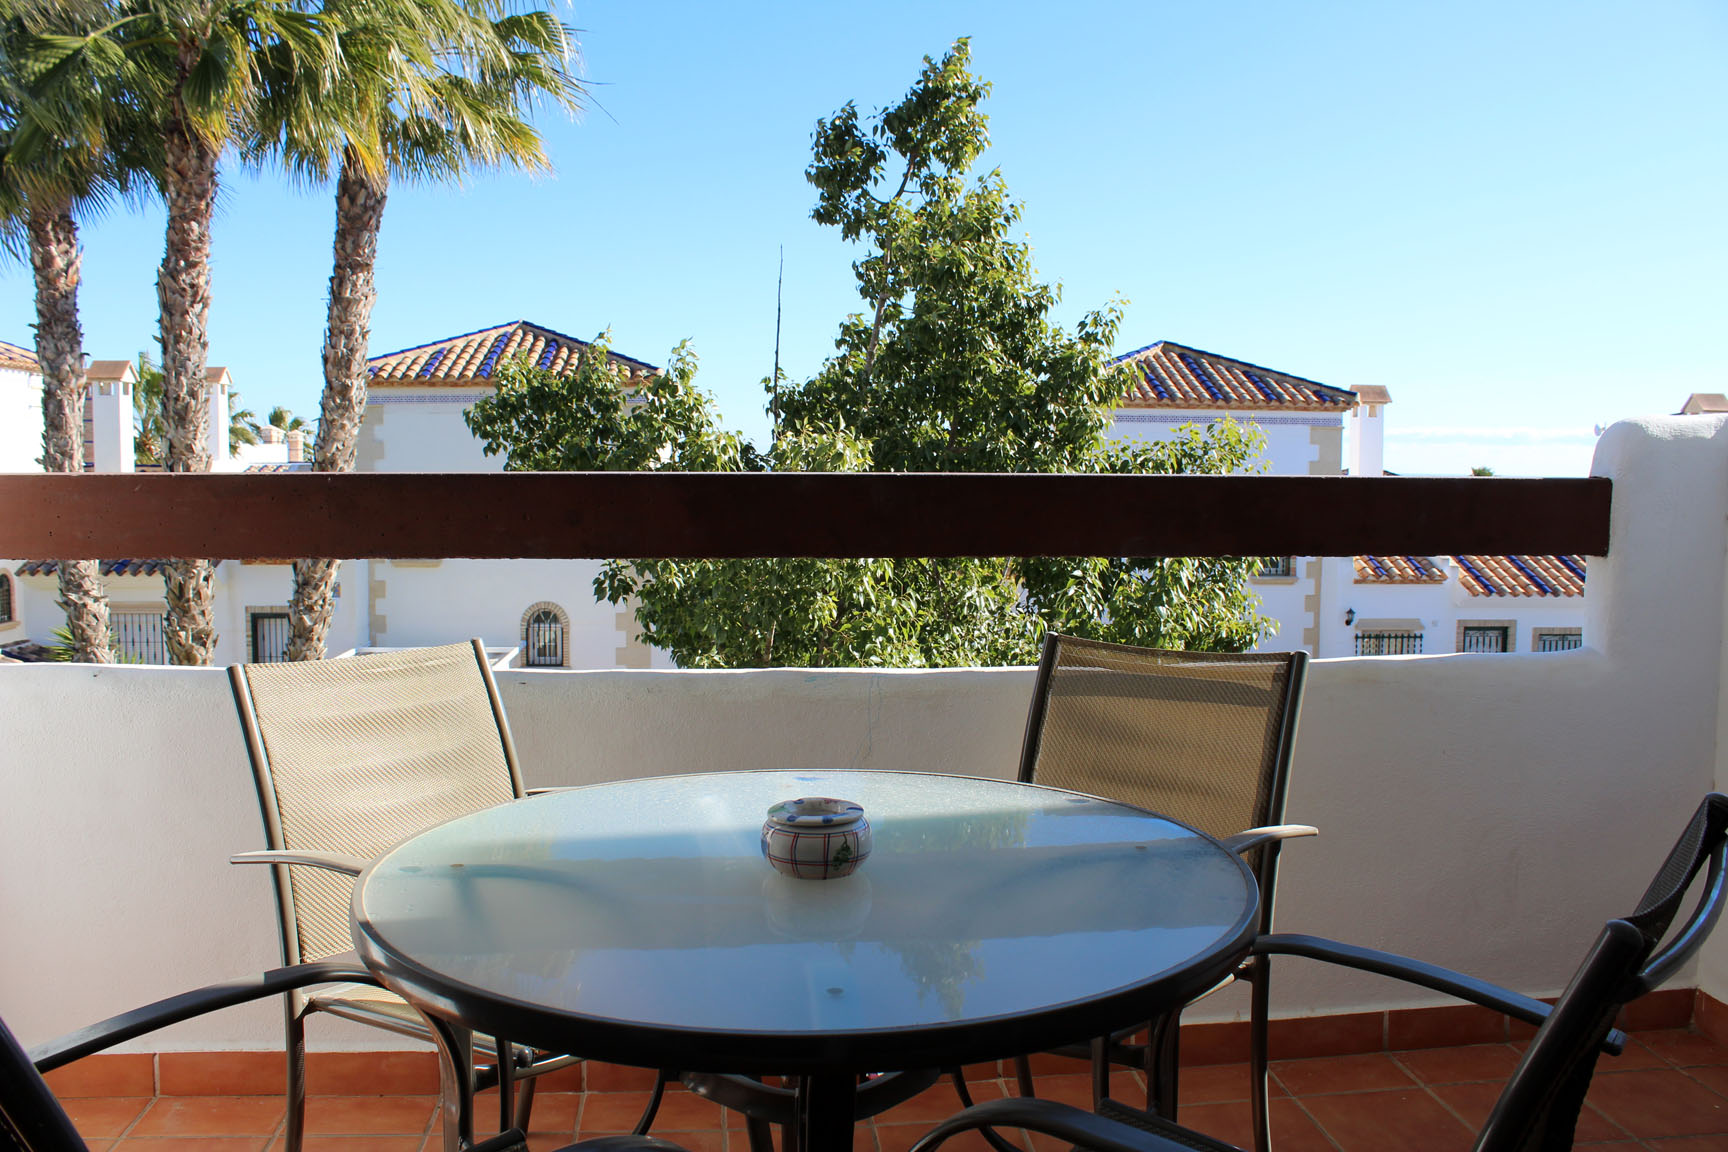 ITSH Property Large balcony with beautiful views all around and over looking the communal pool 10